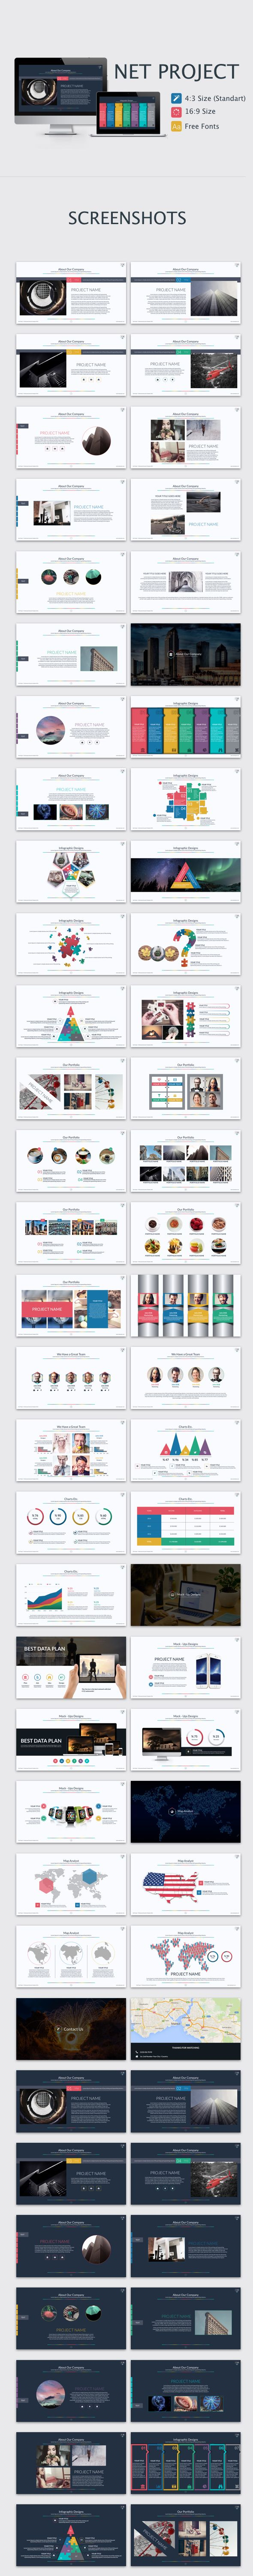 Net Keynote Template. Download here: http://graphicriver.net/item ...